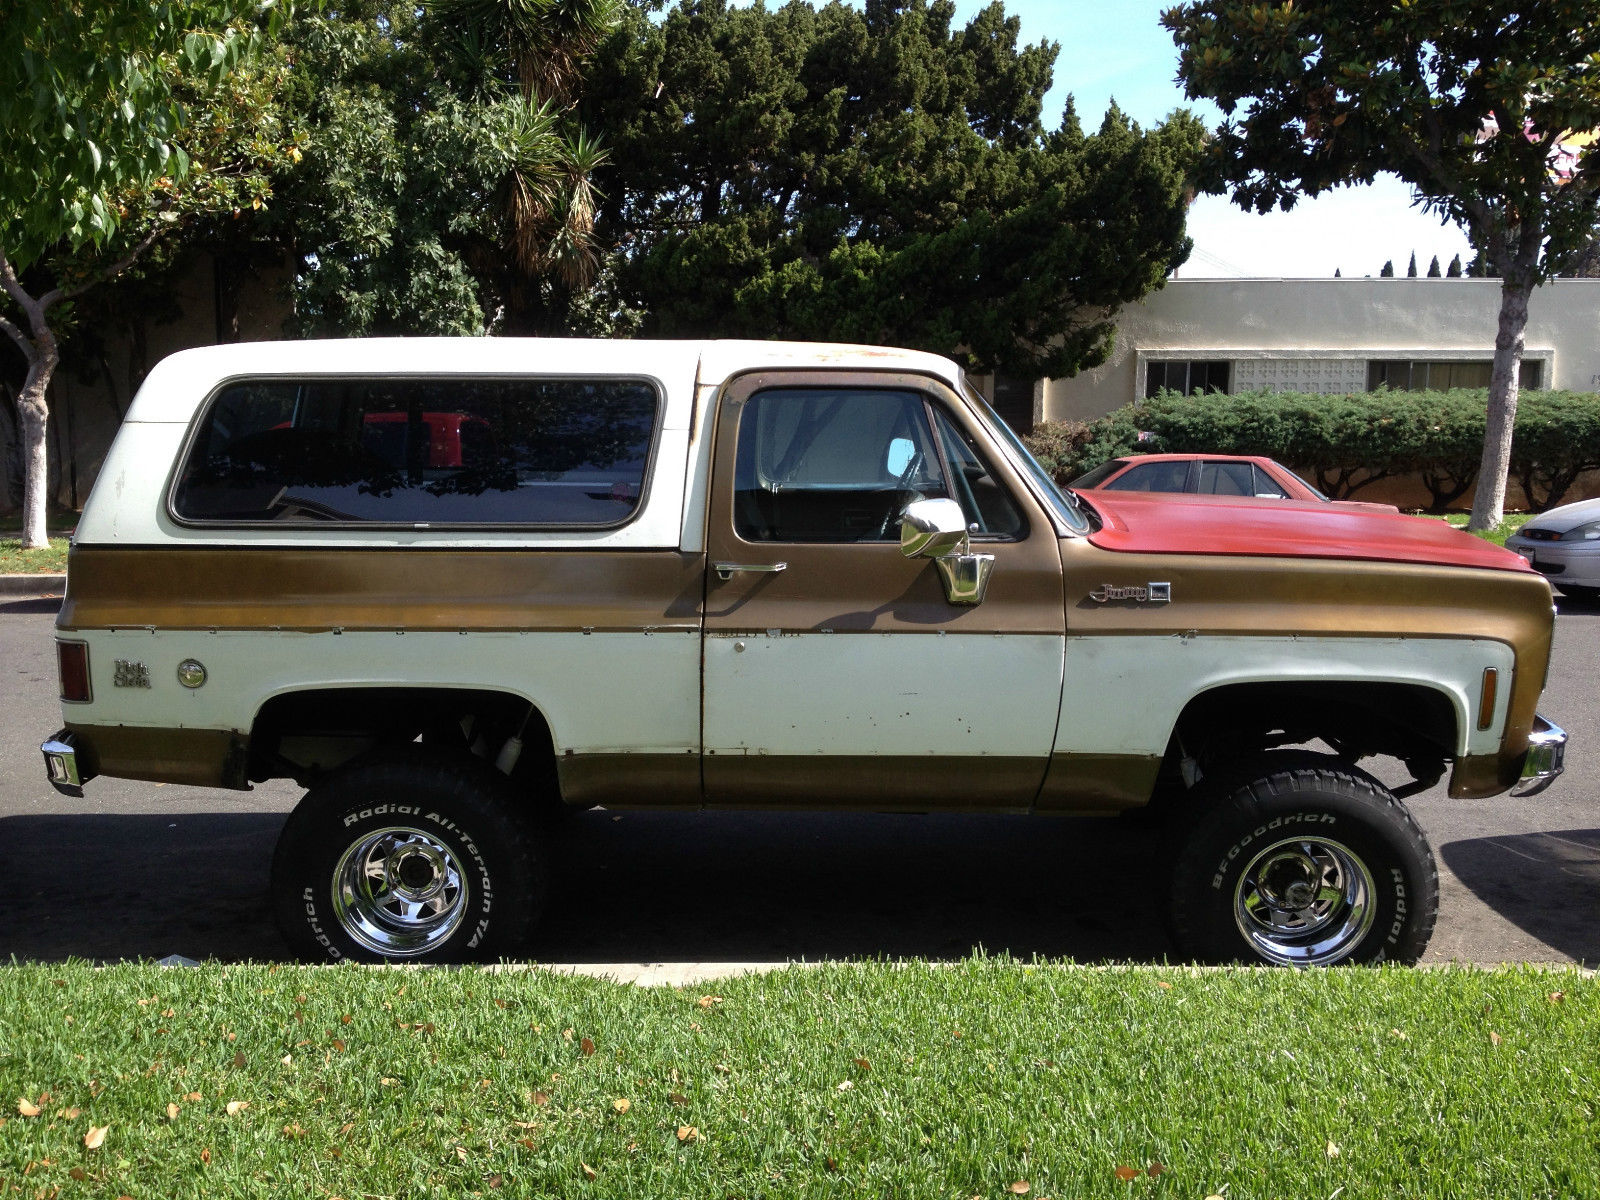 1976 gmc jimmy high sierra sport utility 2 door 5 7l for sale in orange california united states. Black Bedroom Furniture Sets. Home Design Ideas